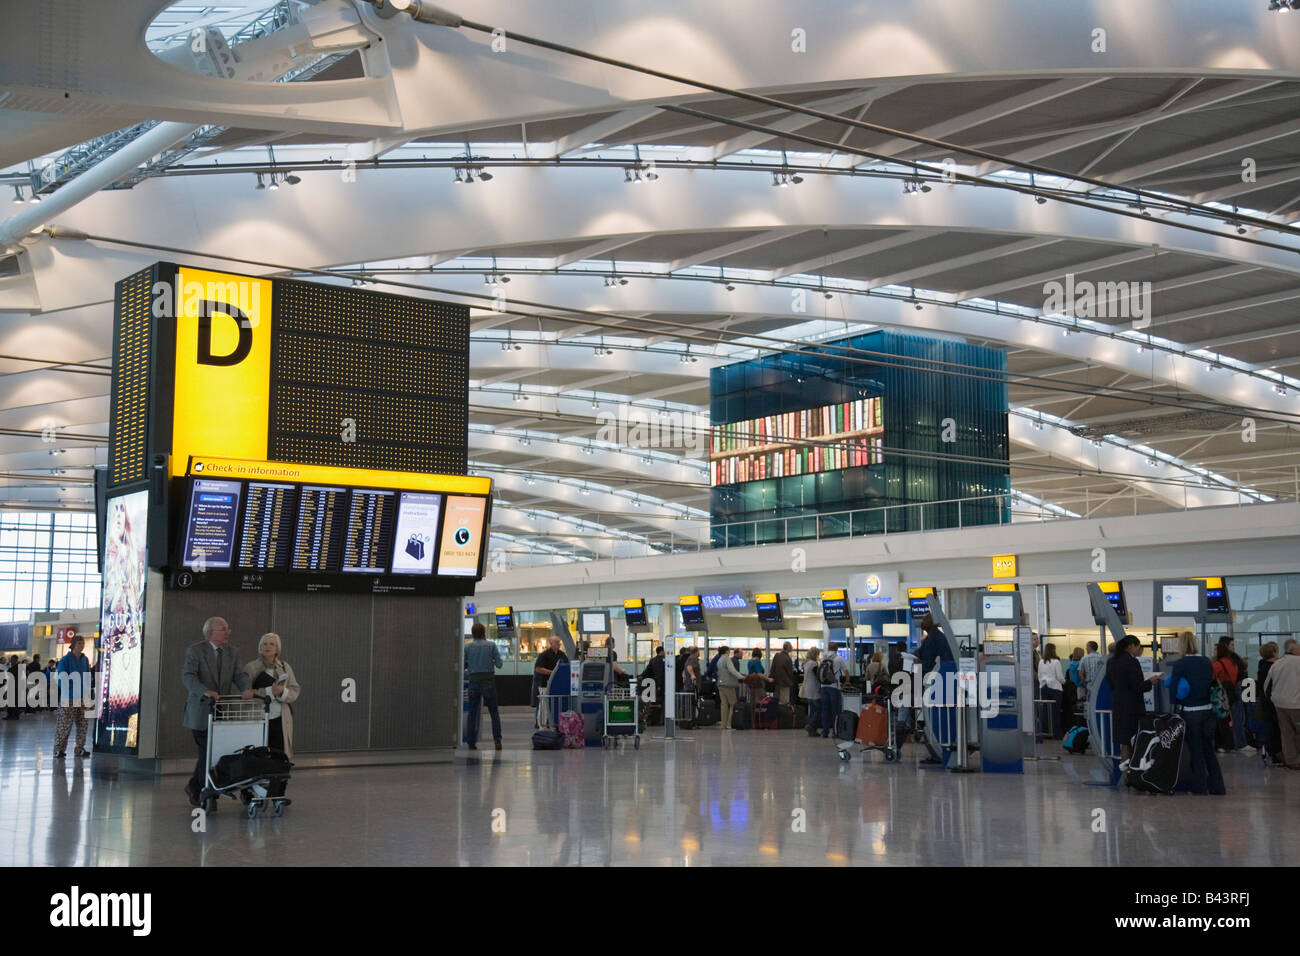 Heathrow Greater London England UK Heathrow Airport international BA departures check-in area in Terminal 5 - Stock Image